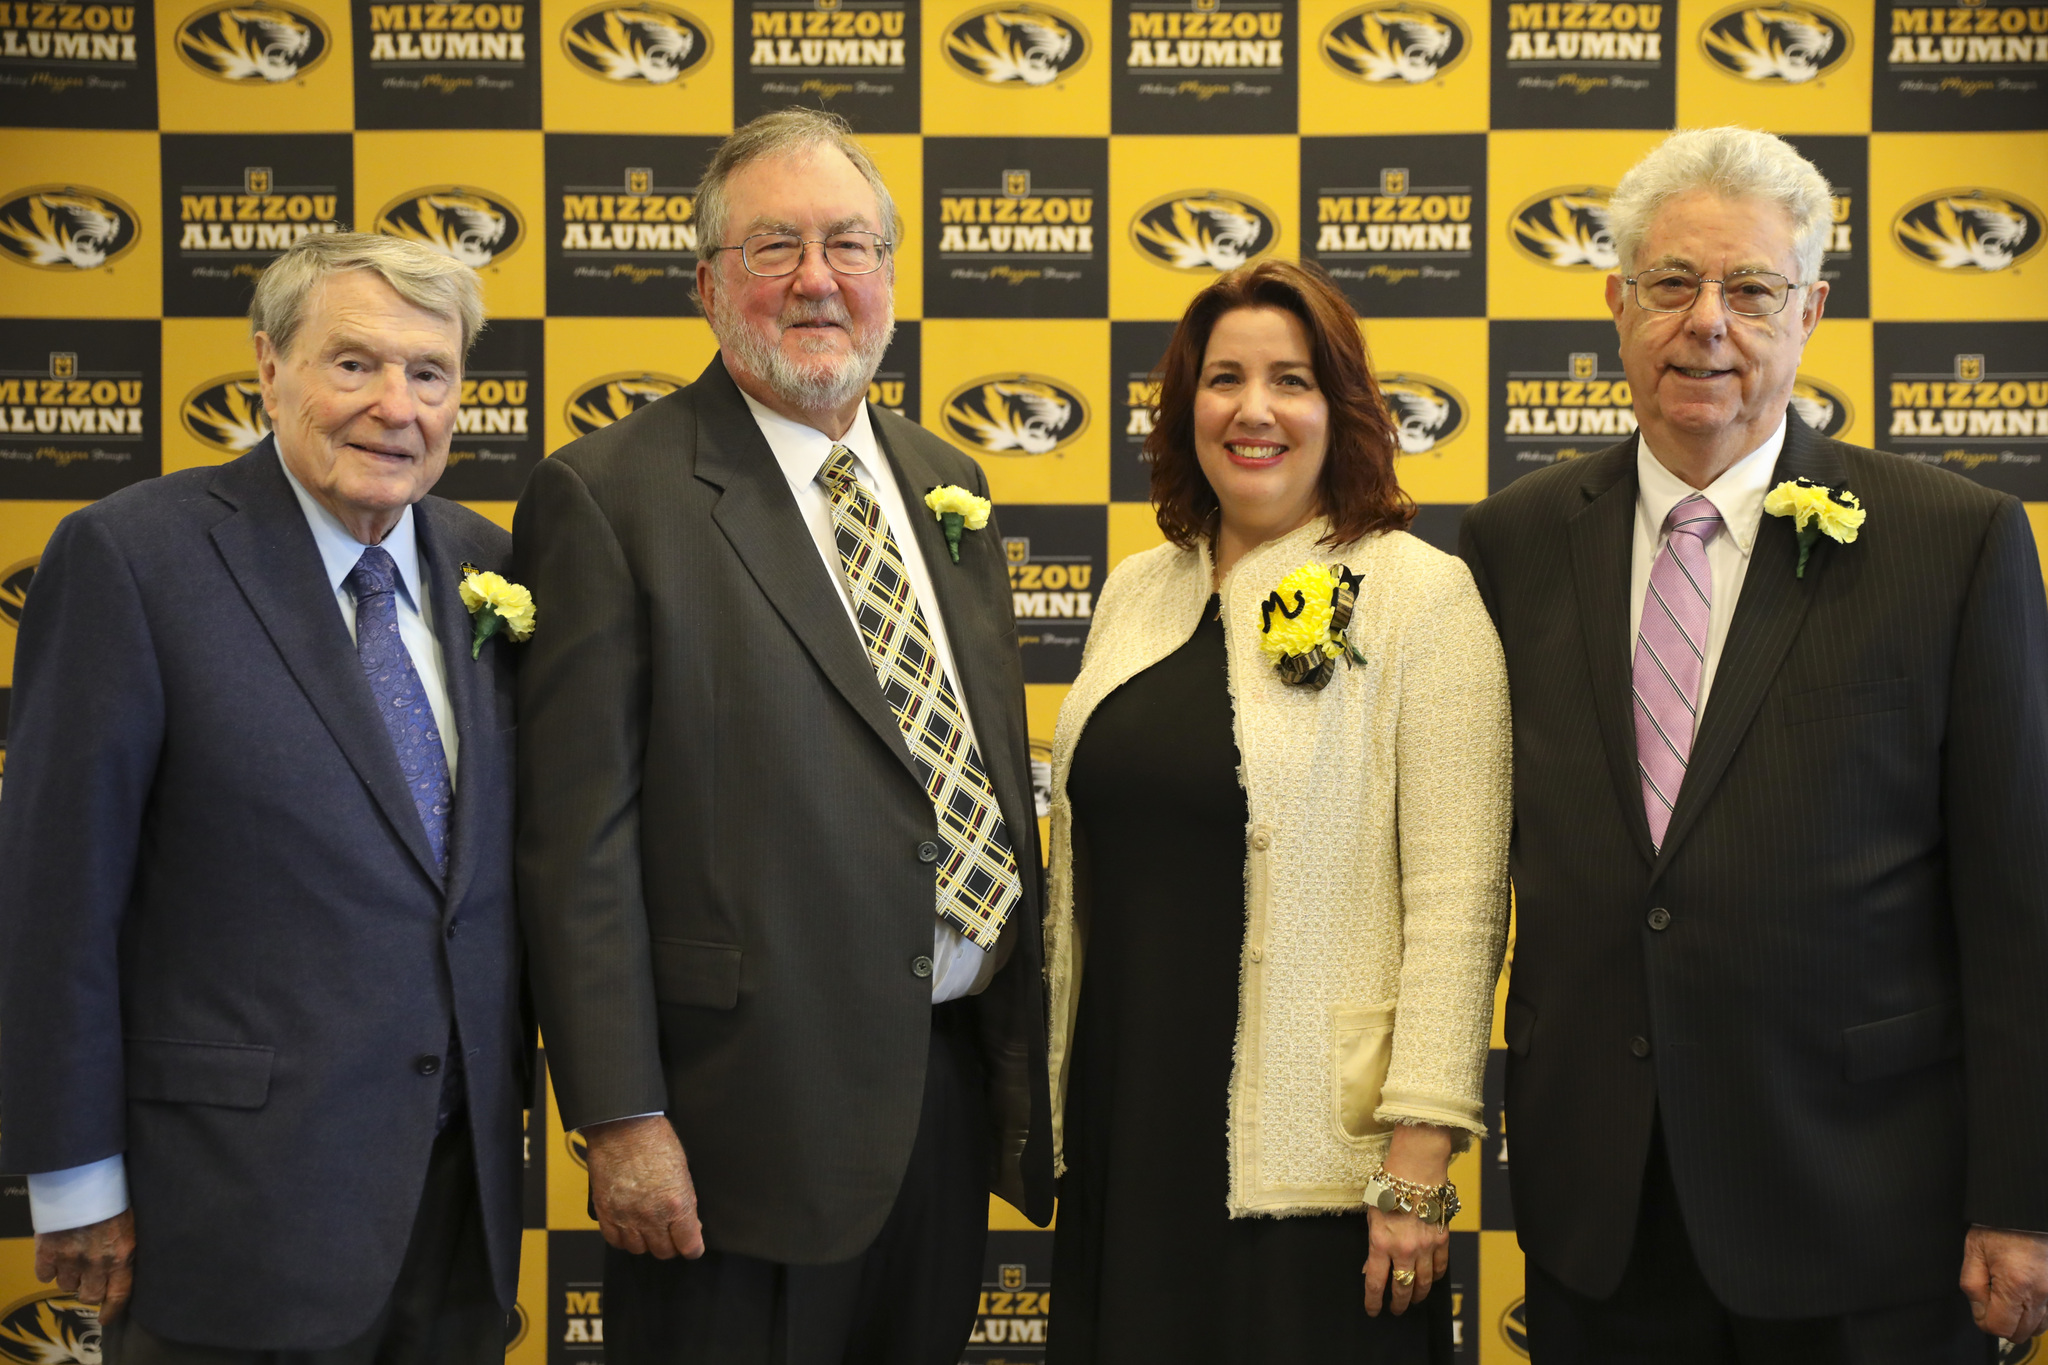 Jim Lehrer, Andy Bryant and the Komen family attended a luncheon honoring the induction of Lehrer, Bryant and Susan G. Komen into the Mizzou Alumni Association's Homecoming Hall of Fame.